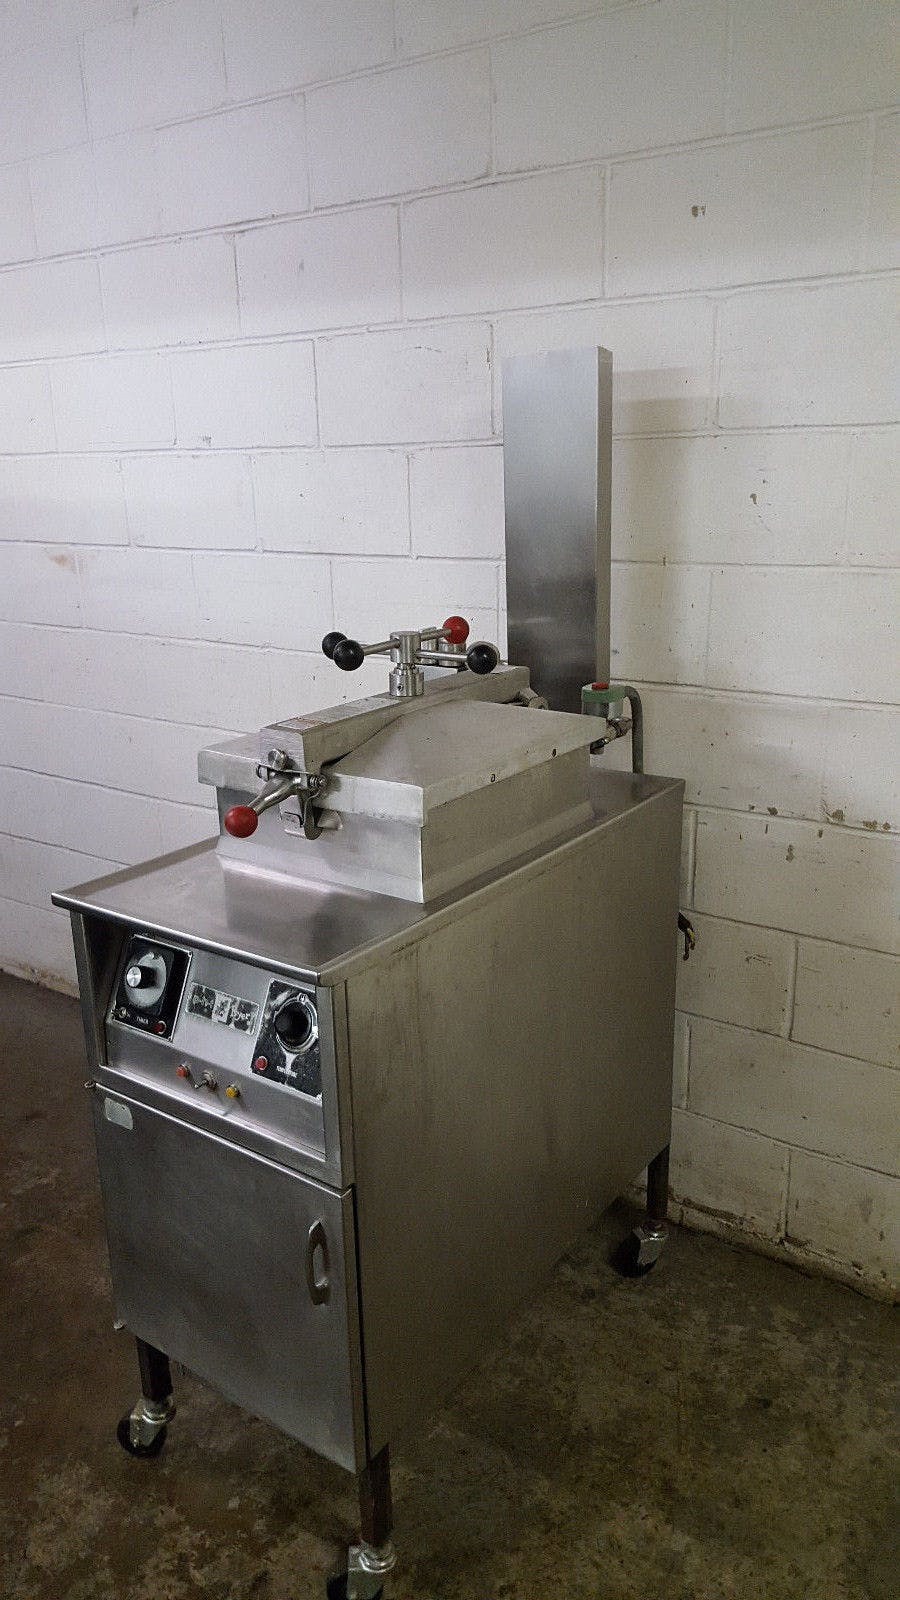 Henny Penny 500 Pressure Fryer Tested 220 Volt Filter Box - sold by Jak's Restaurant Supply